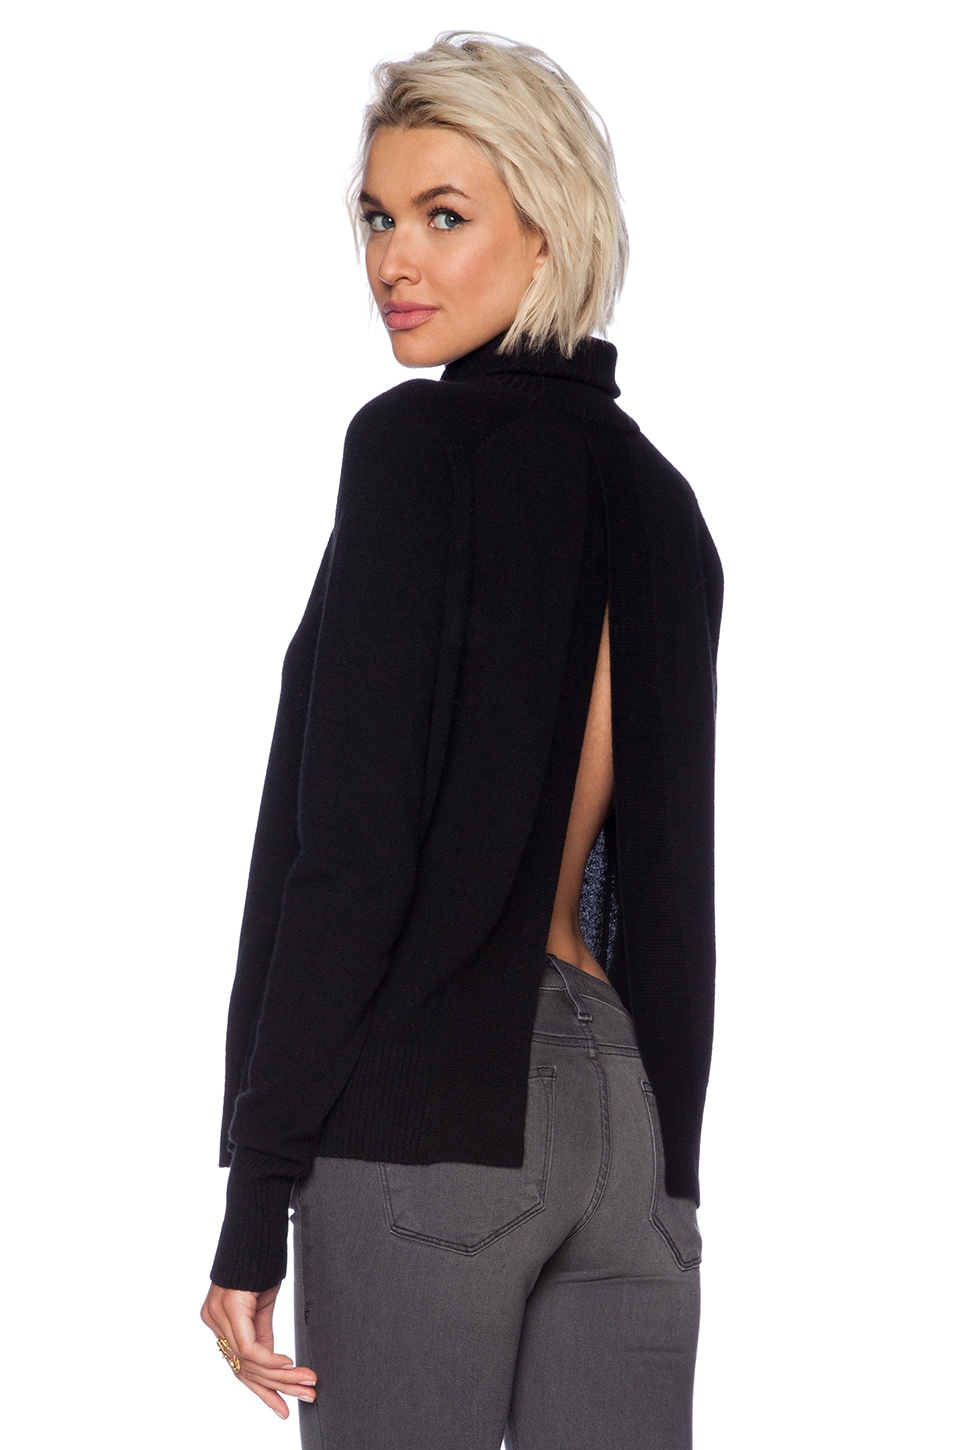 Line Elisa Turtleneck Sweater in Caviar